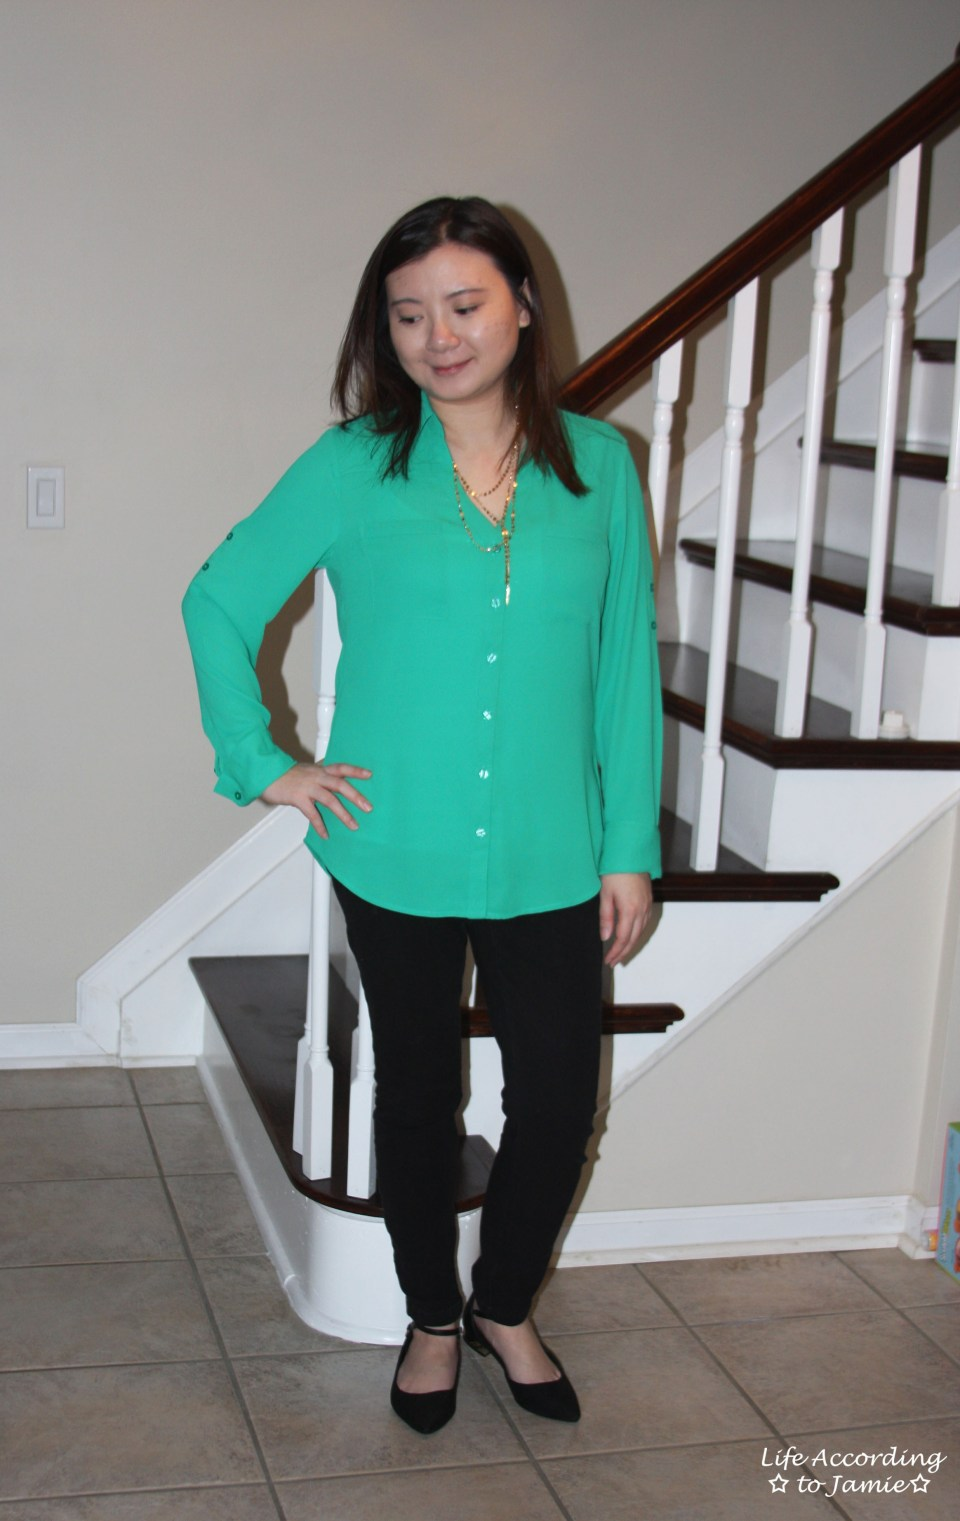 Kelly Green Blouse + Gold Layered Necklace 4